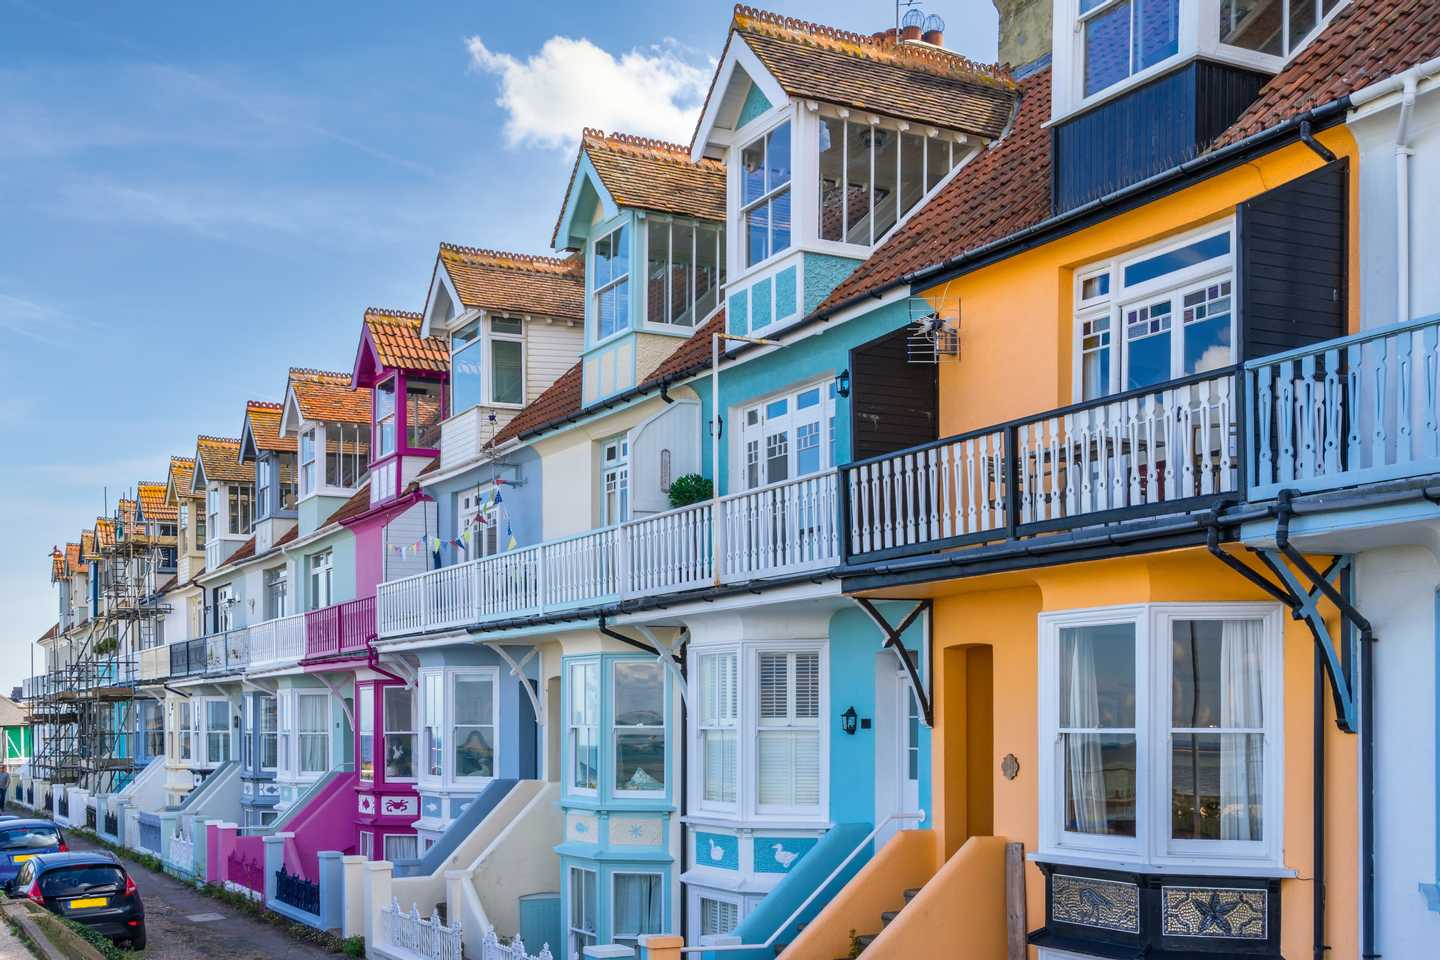 Colourful seafront homes in Whitstable